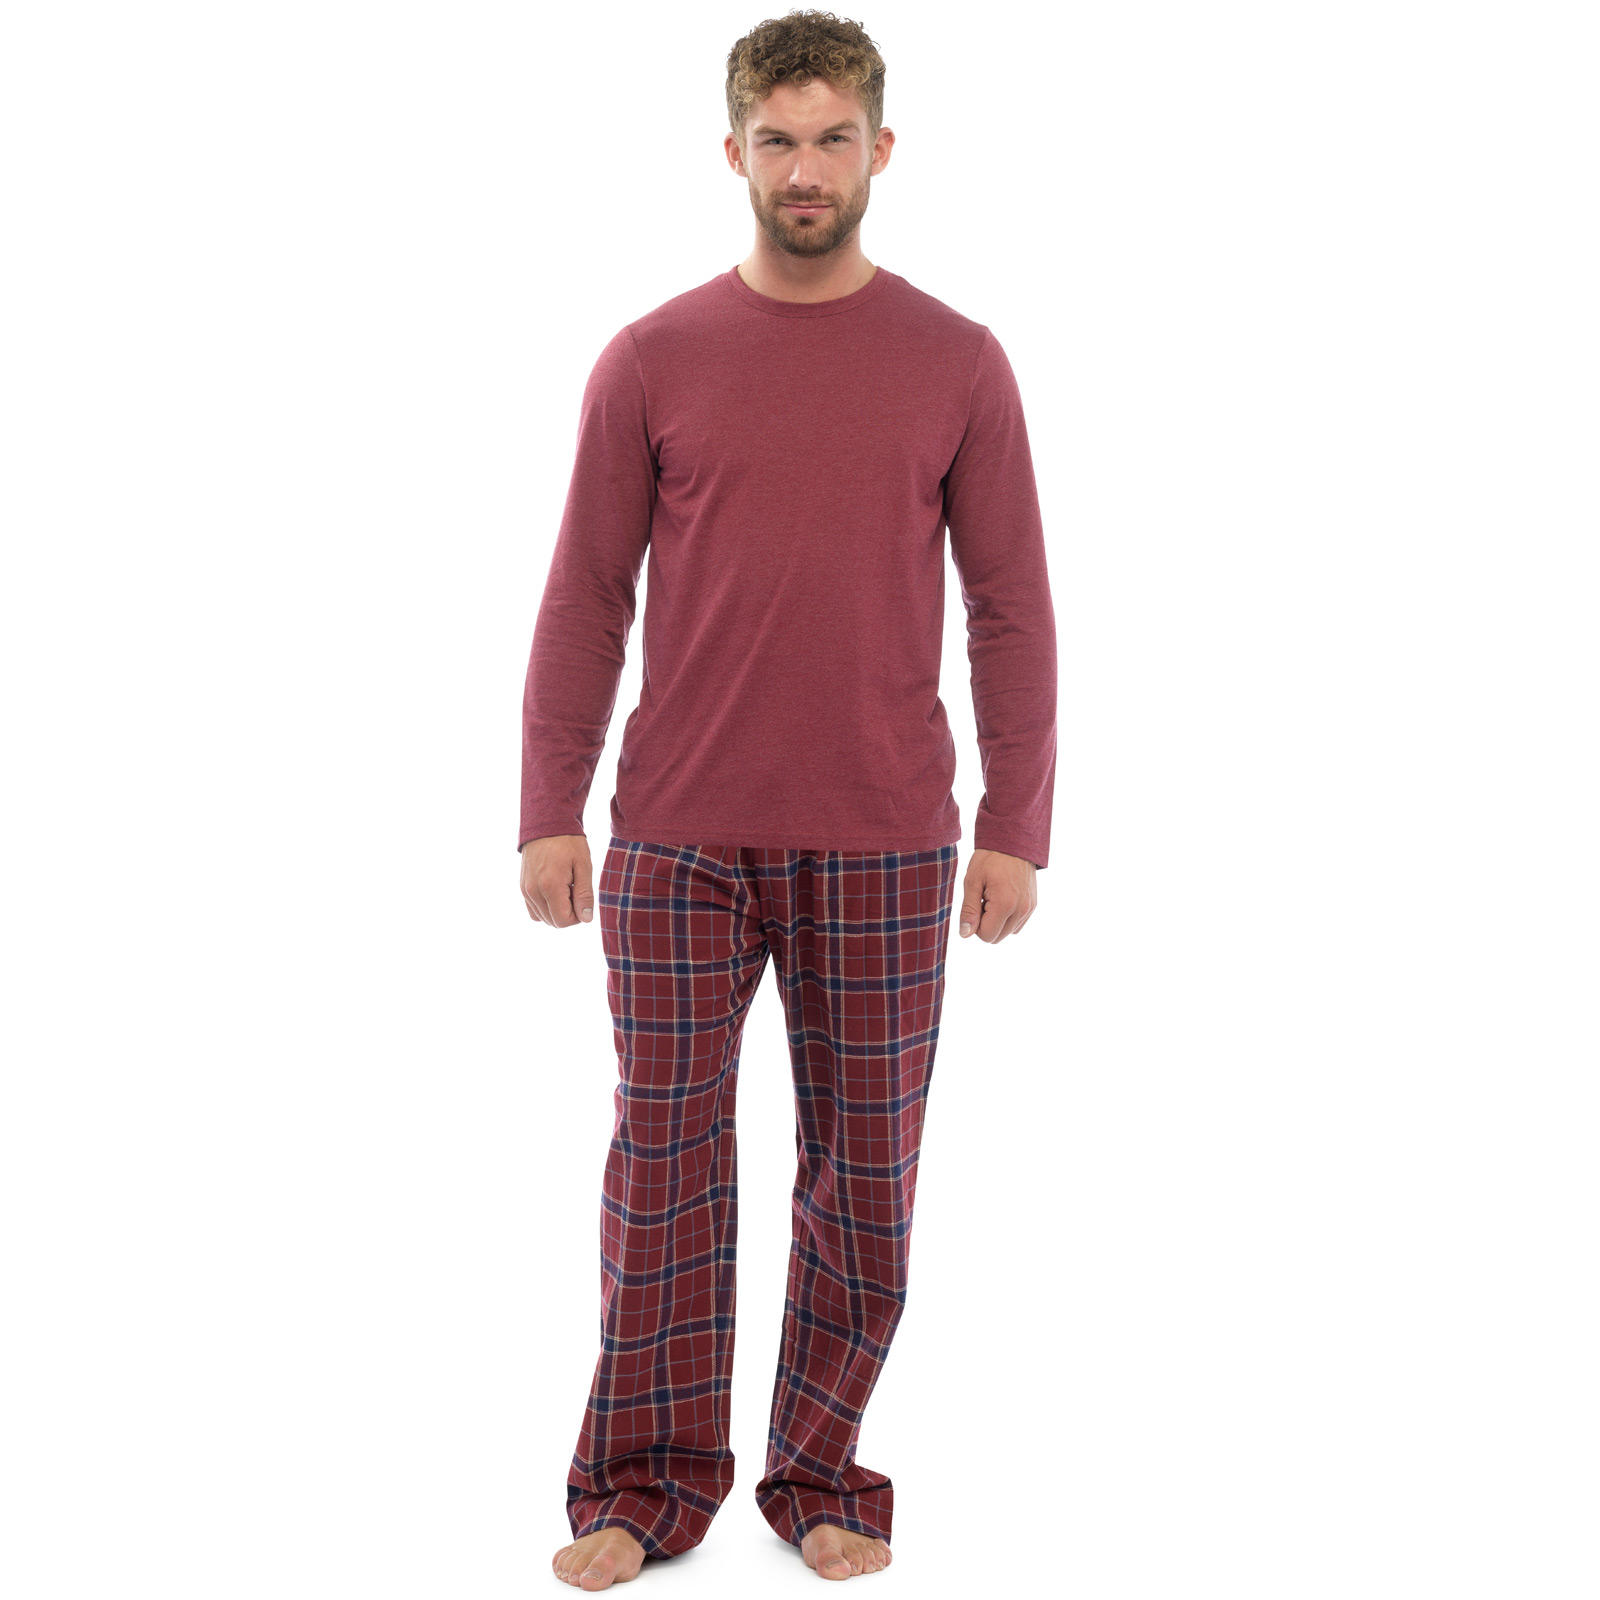 Sleep comfortably and look stylish with pyjama shirts, T-shirts and sweatshirts from the highest quality men's sleepwear designers at MR PORTER.